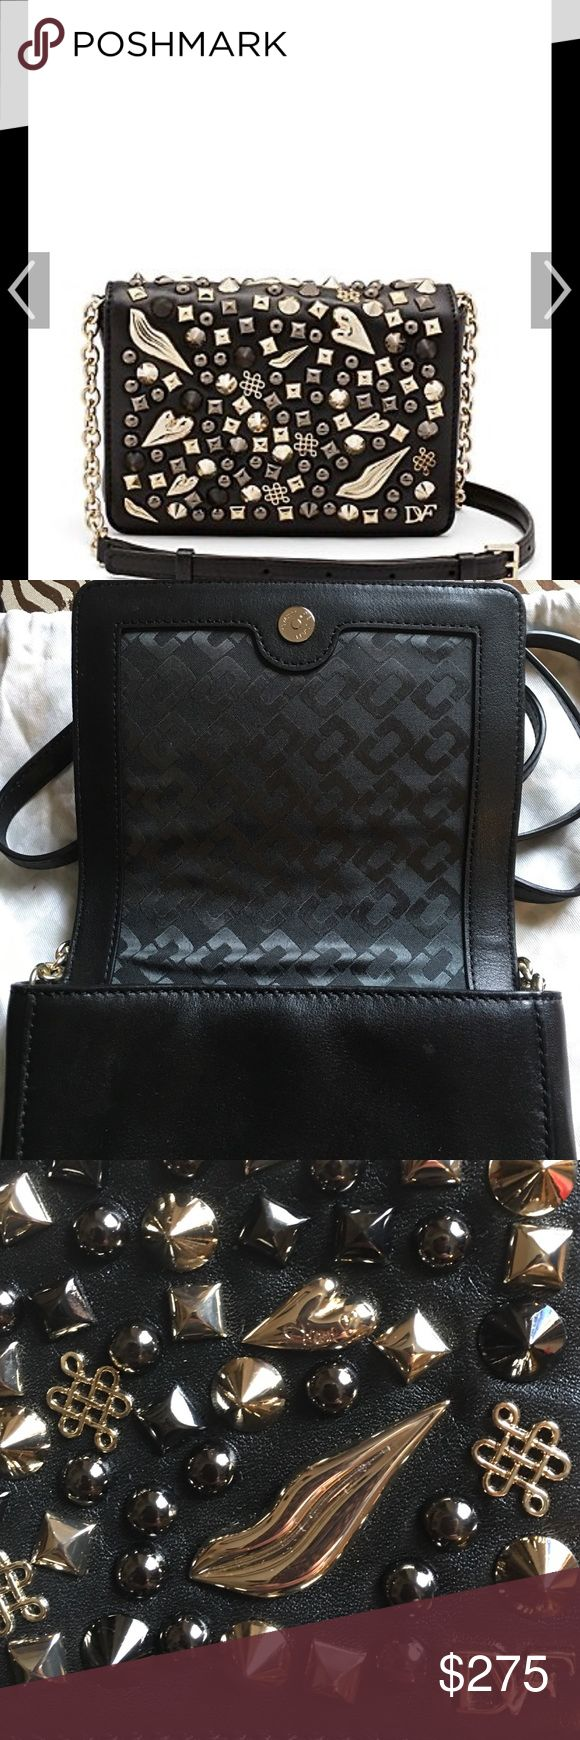 DVF crazy Stud Cross body bag Used one time, still in pristine condition. With dustbag and tags. This bag is so cute, the leather on it is gorgeous and if you want to add a little fun to your wardrobe this is just what you need. DVF Bags Crossbody Bags